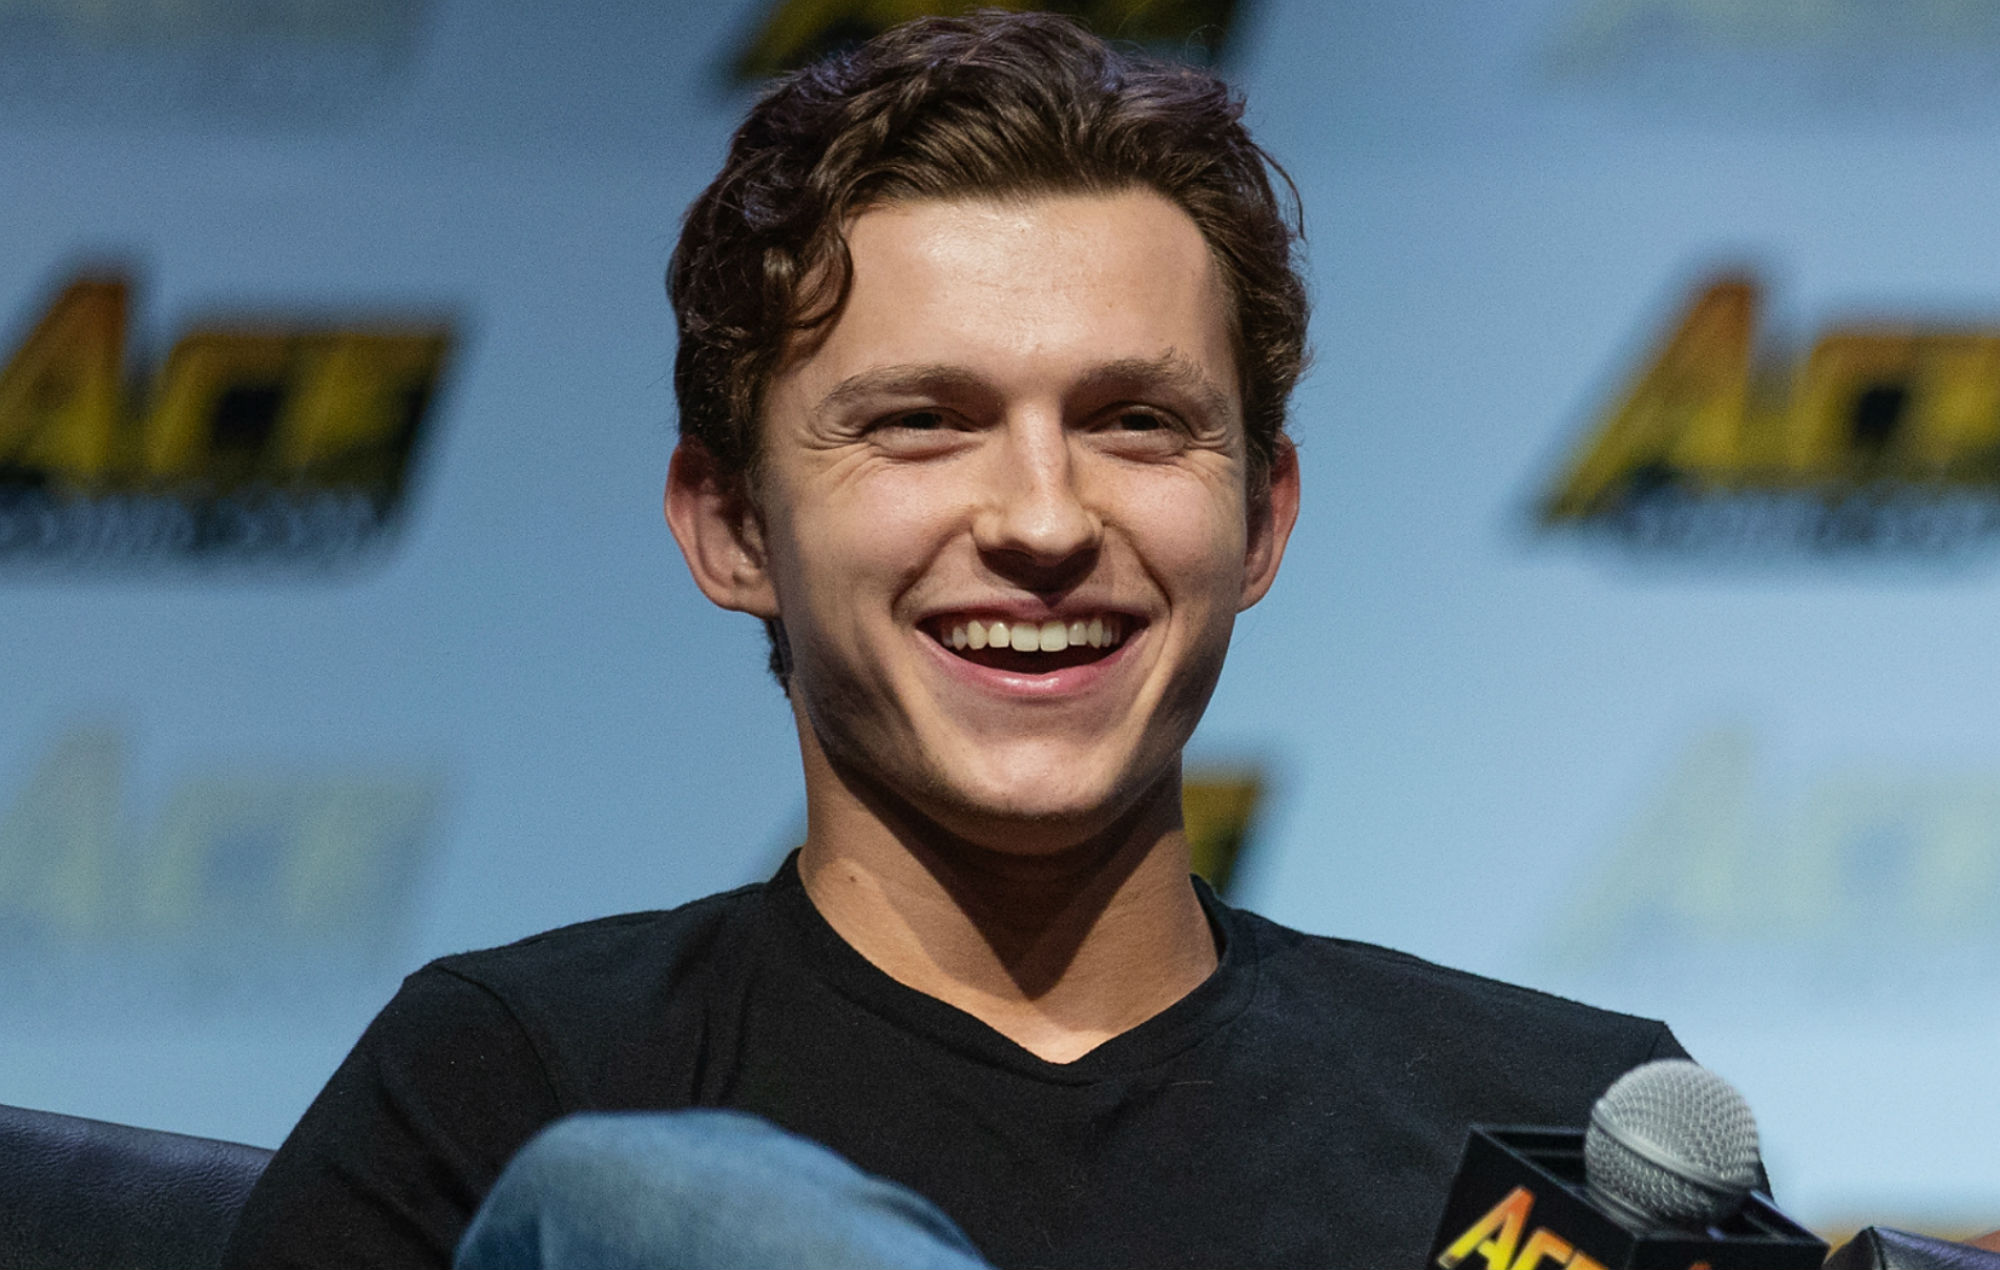 tomholland GettyImages 982644220 20 Things You Probably Never Knew About Tom Holland